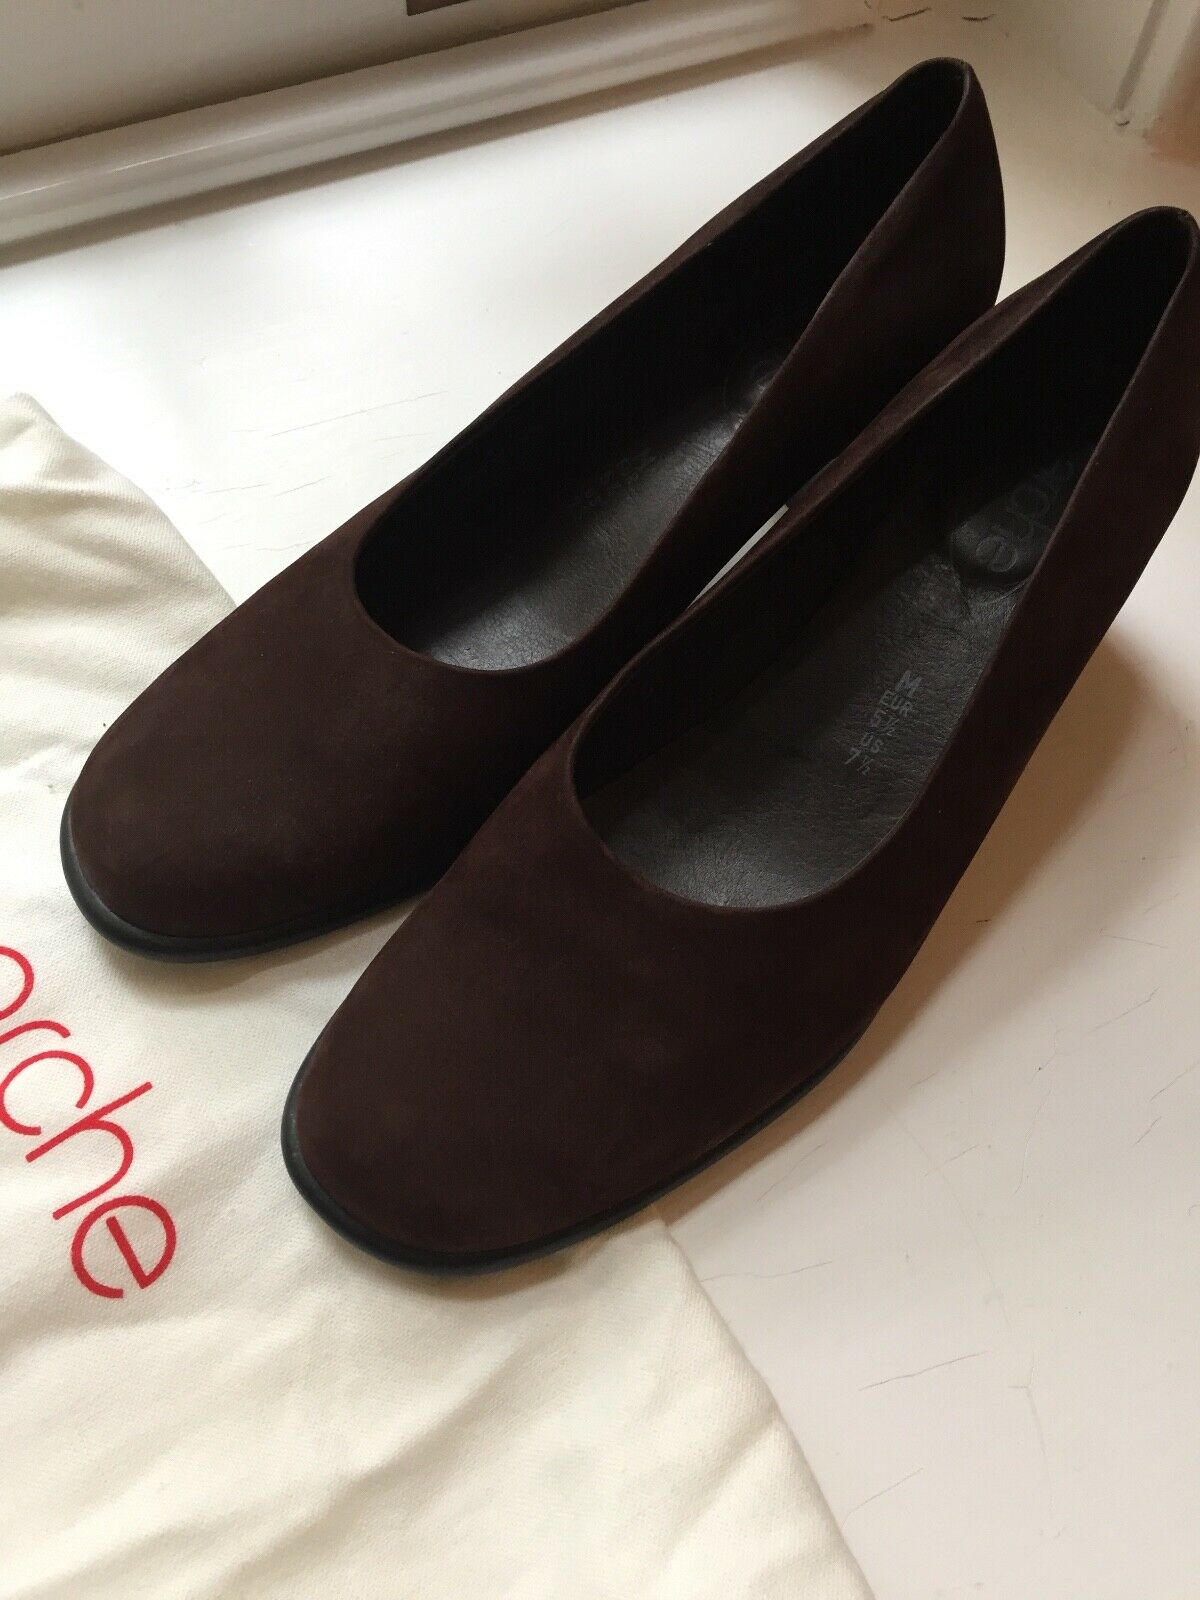 Arche women shoes 37 7.5 brown suede heels France worn once